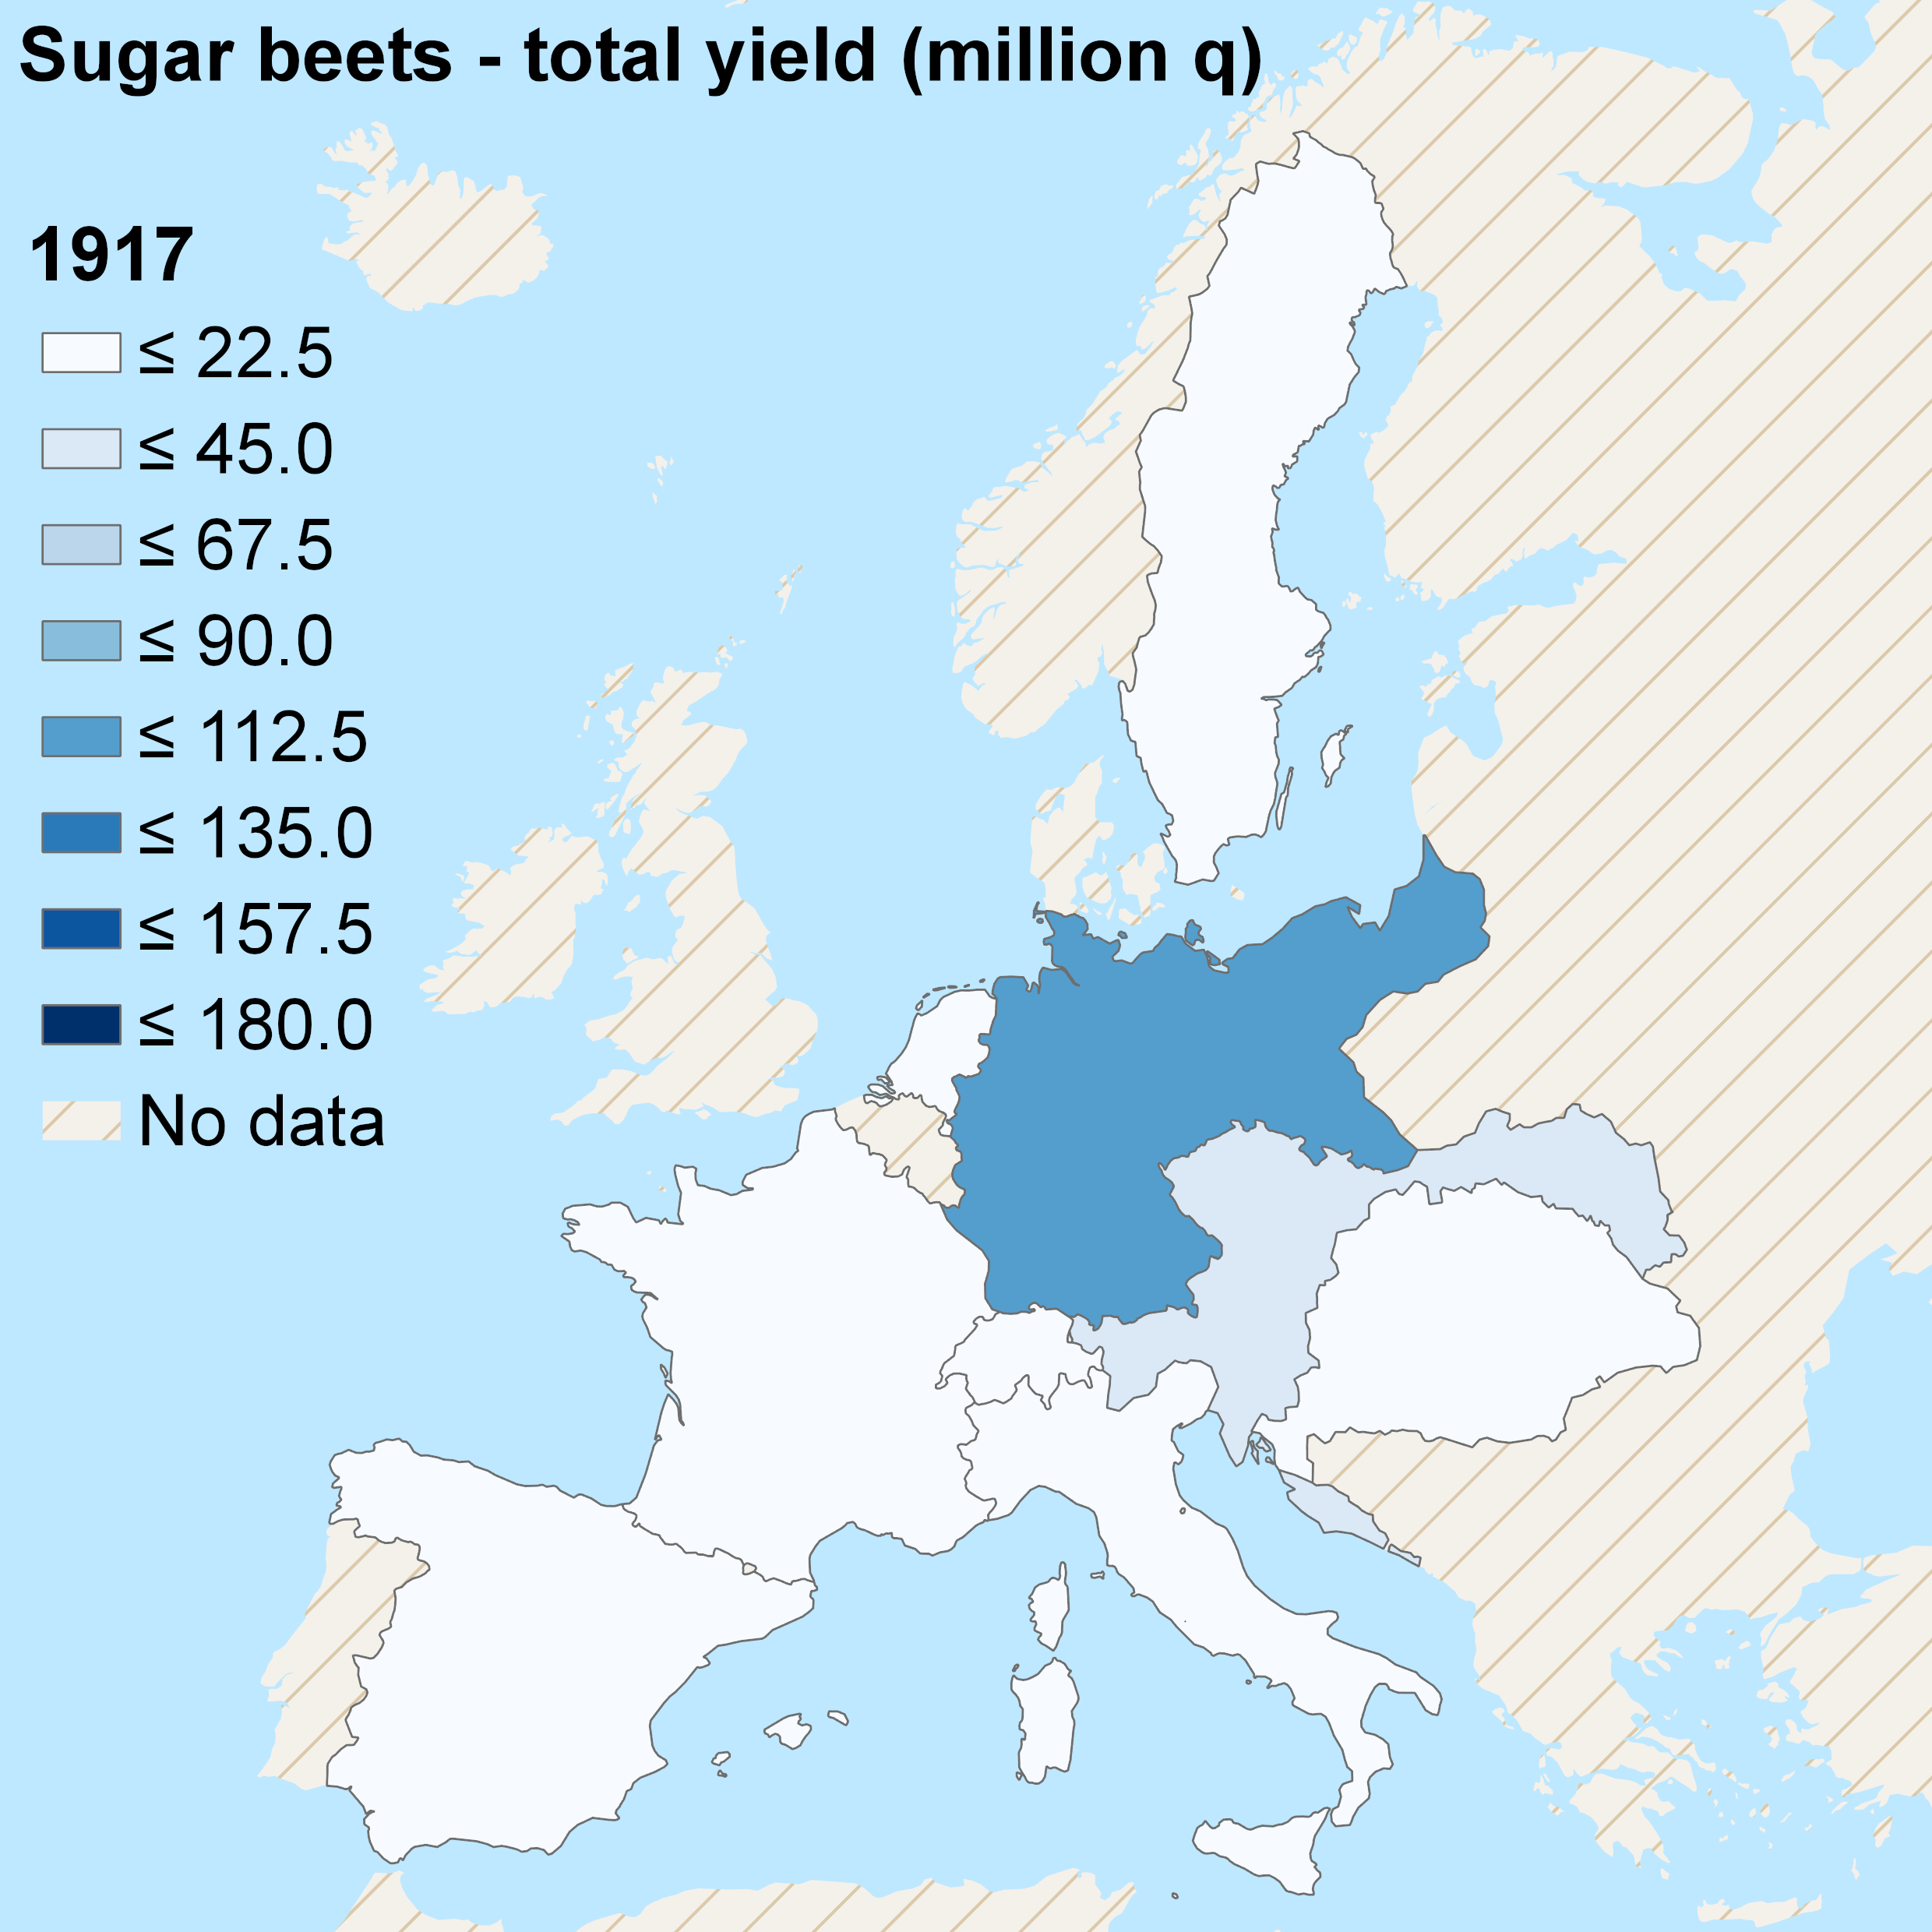 sugarbeets-total-1917